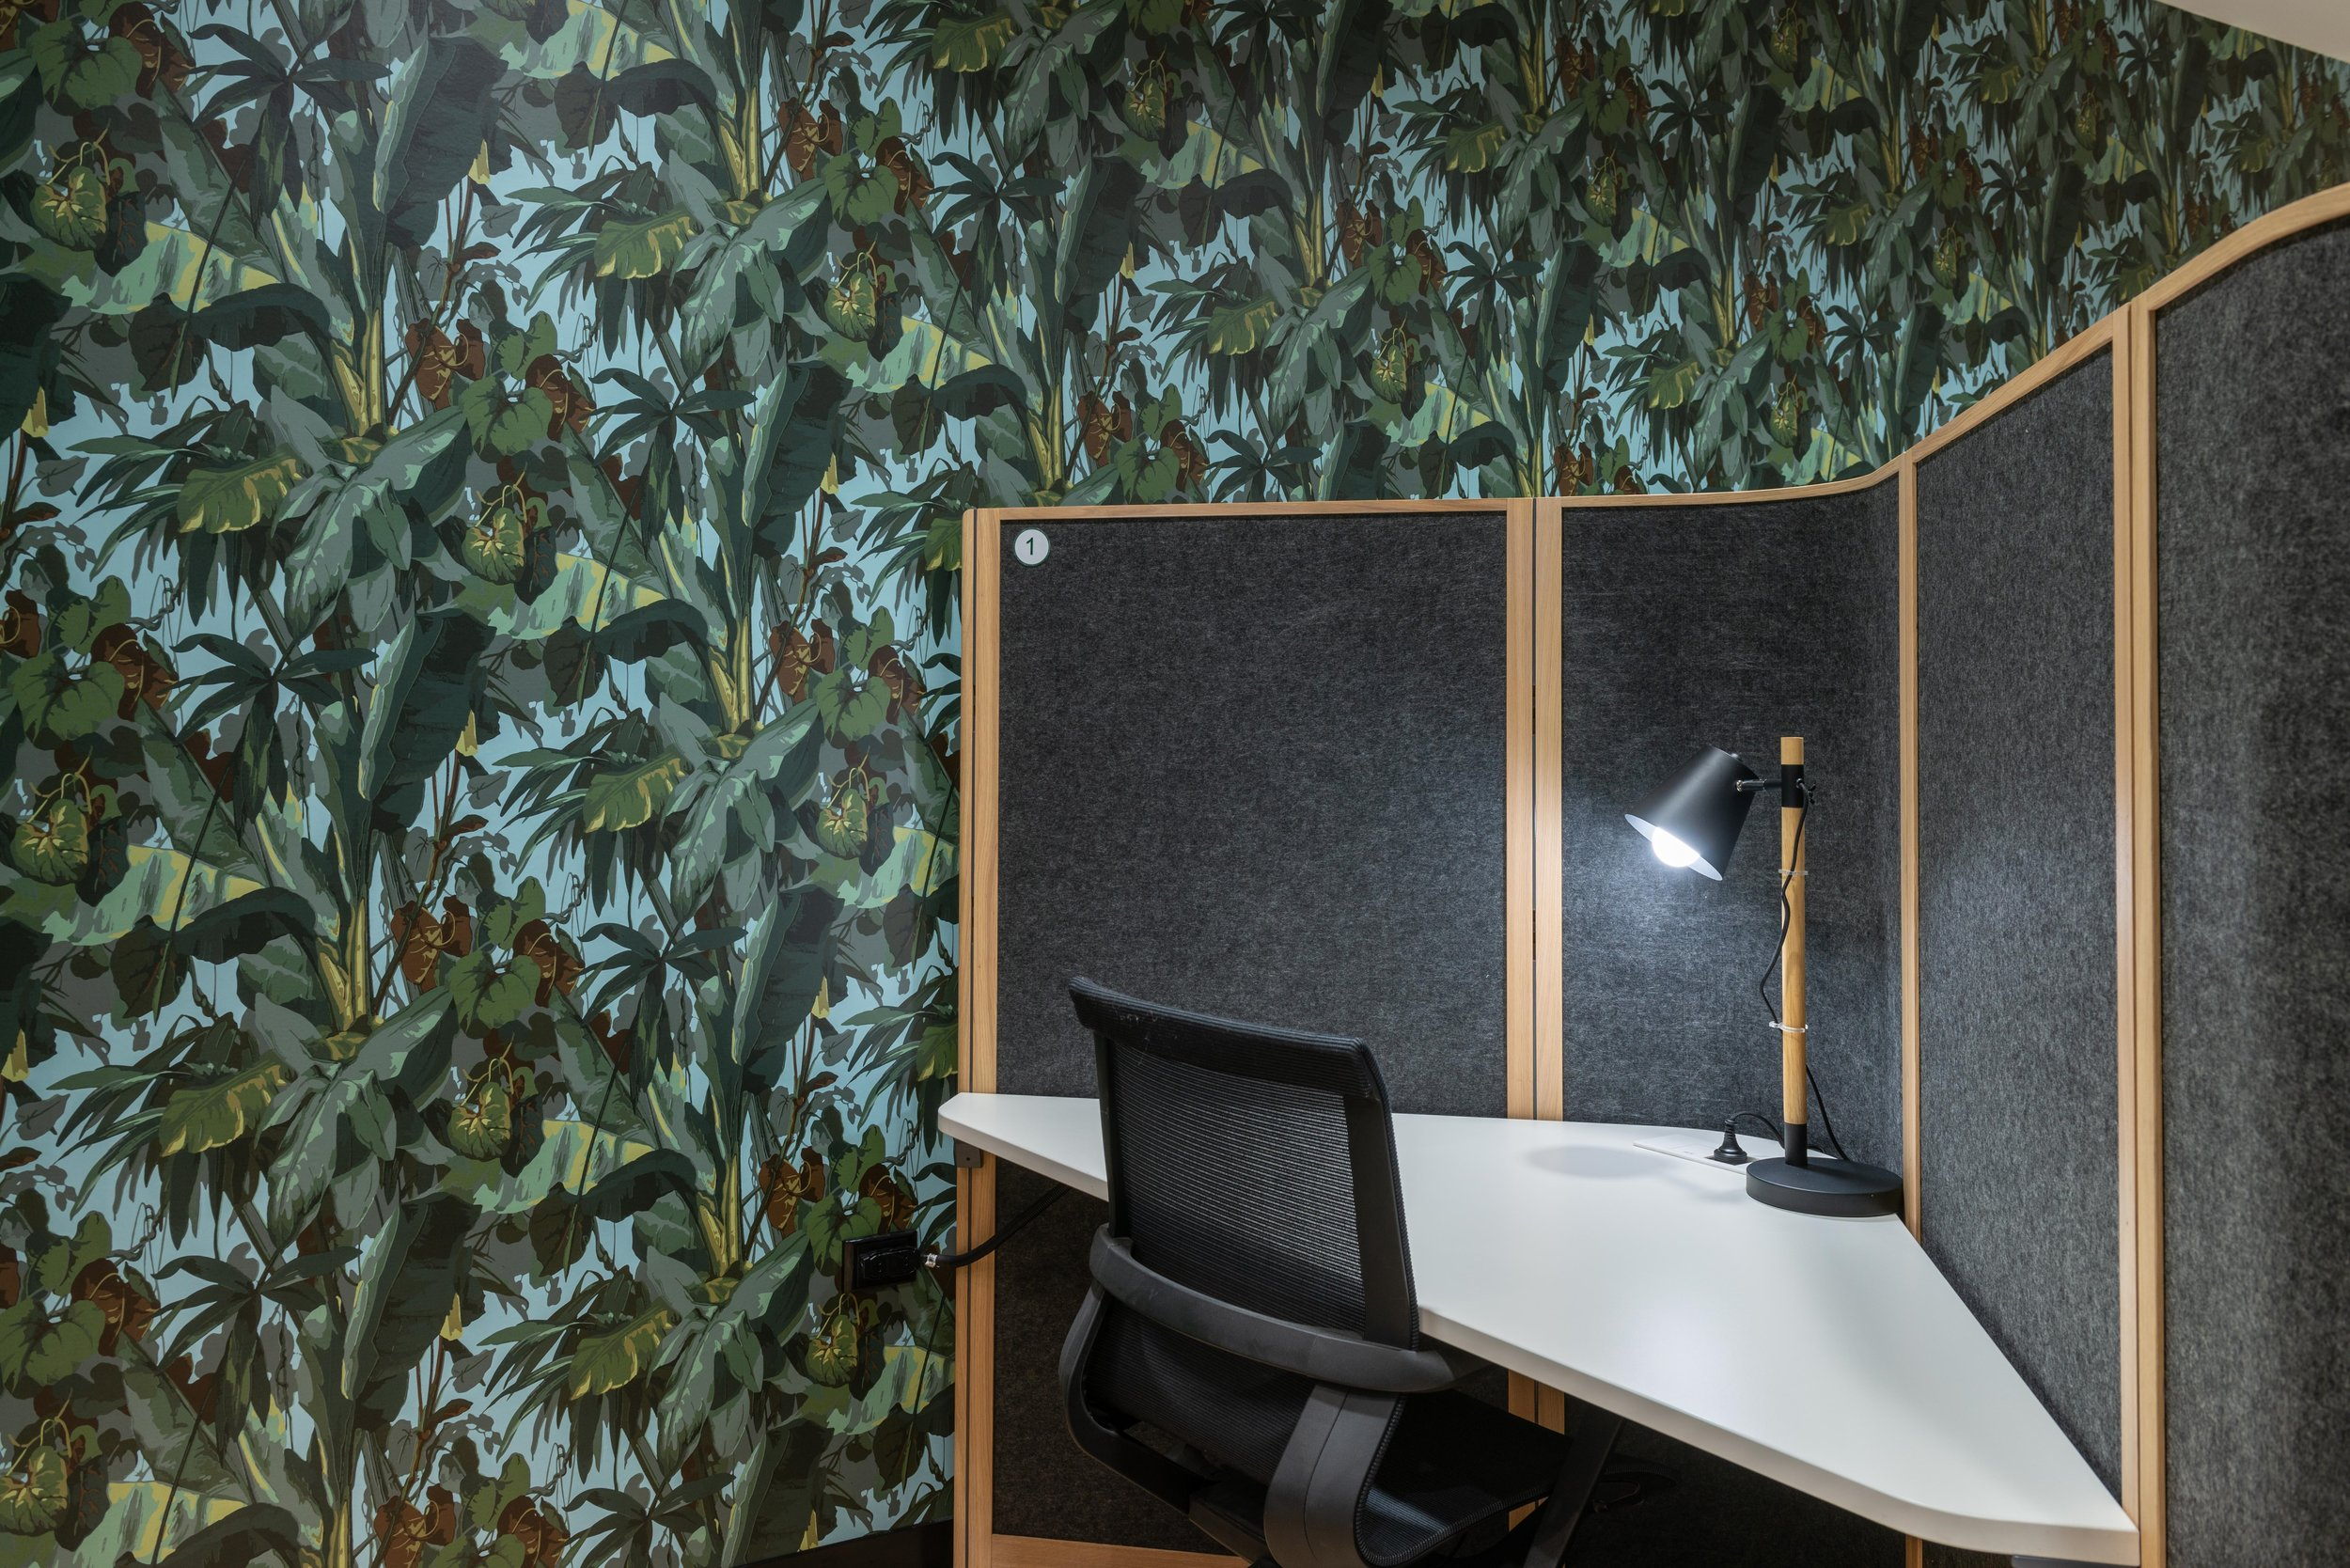 Work Booths: - Hourly Rate - $5.00Daily Rate - $40.00Minimum Booking - 1 HourMembers - Unlimited